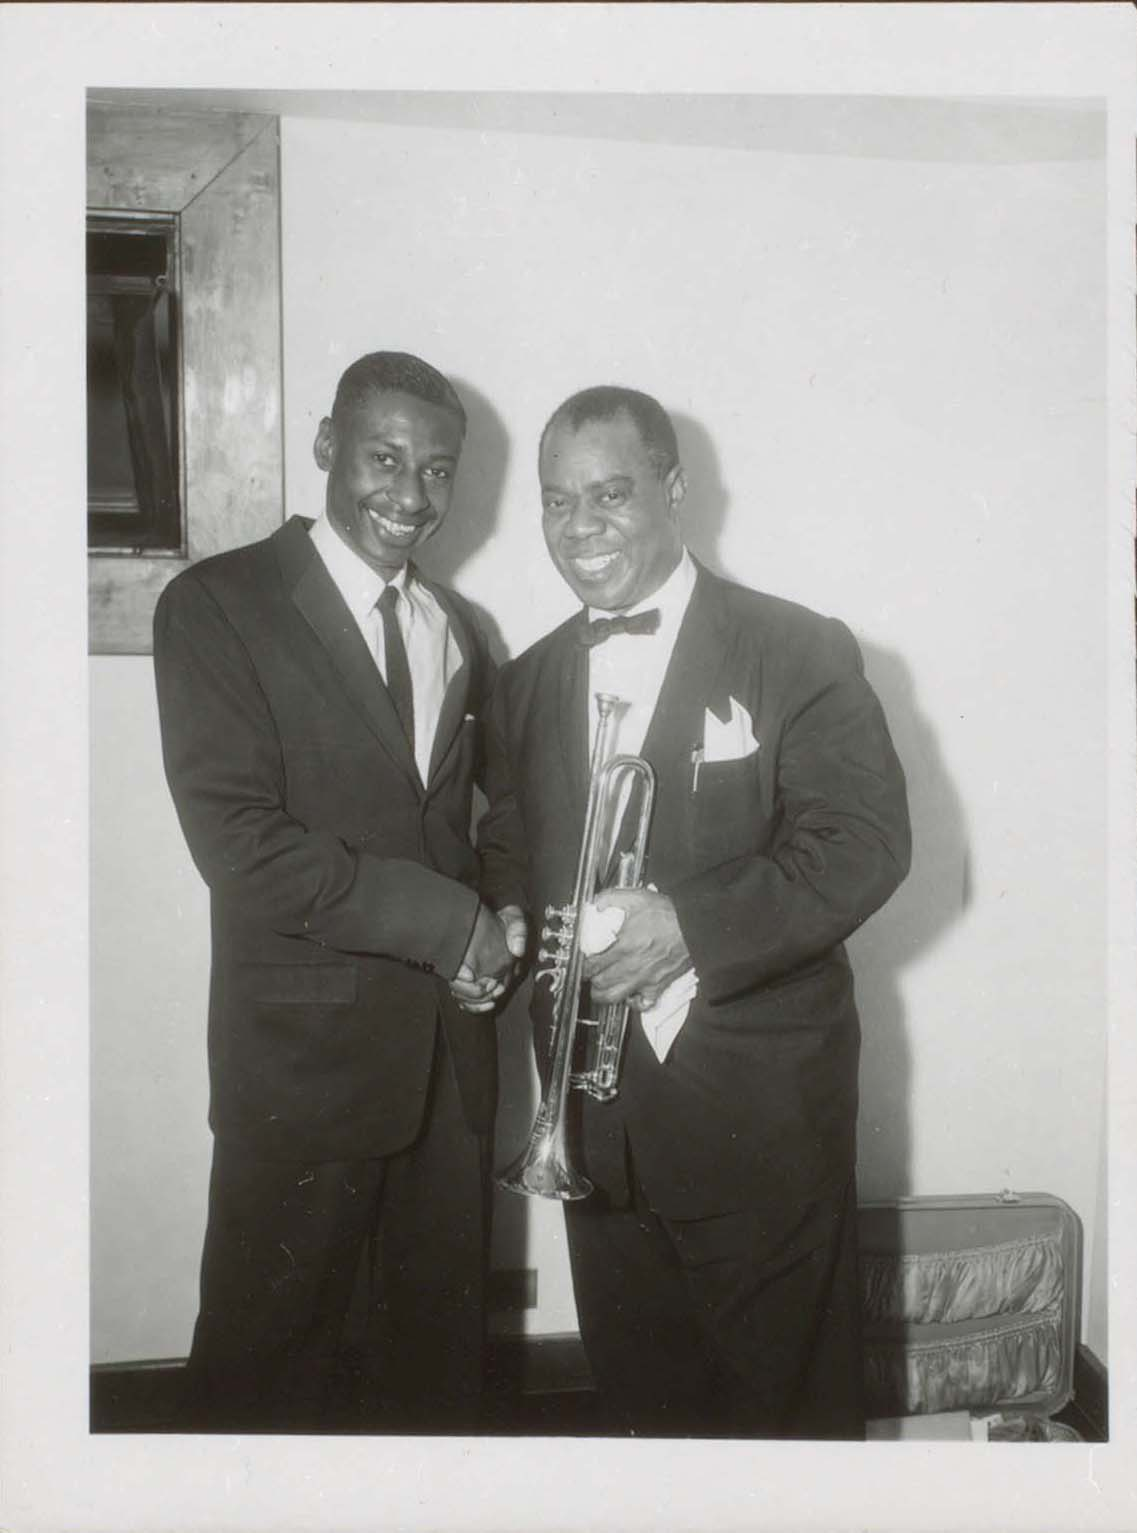 Jimmy Baynes and Louis Armstrong in Cleveland